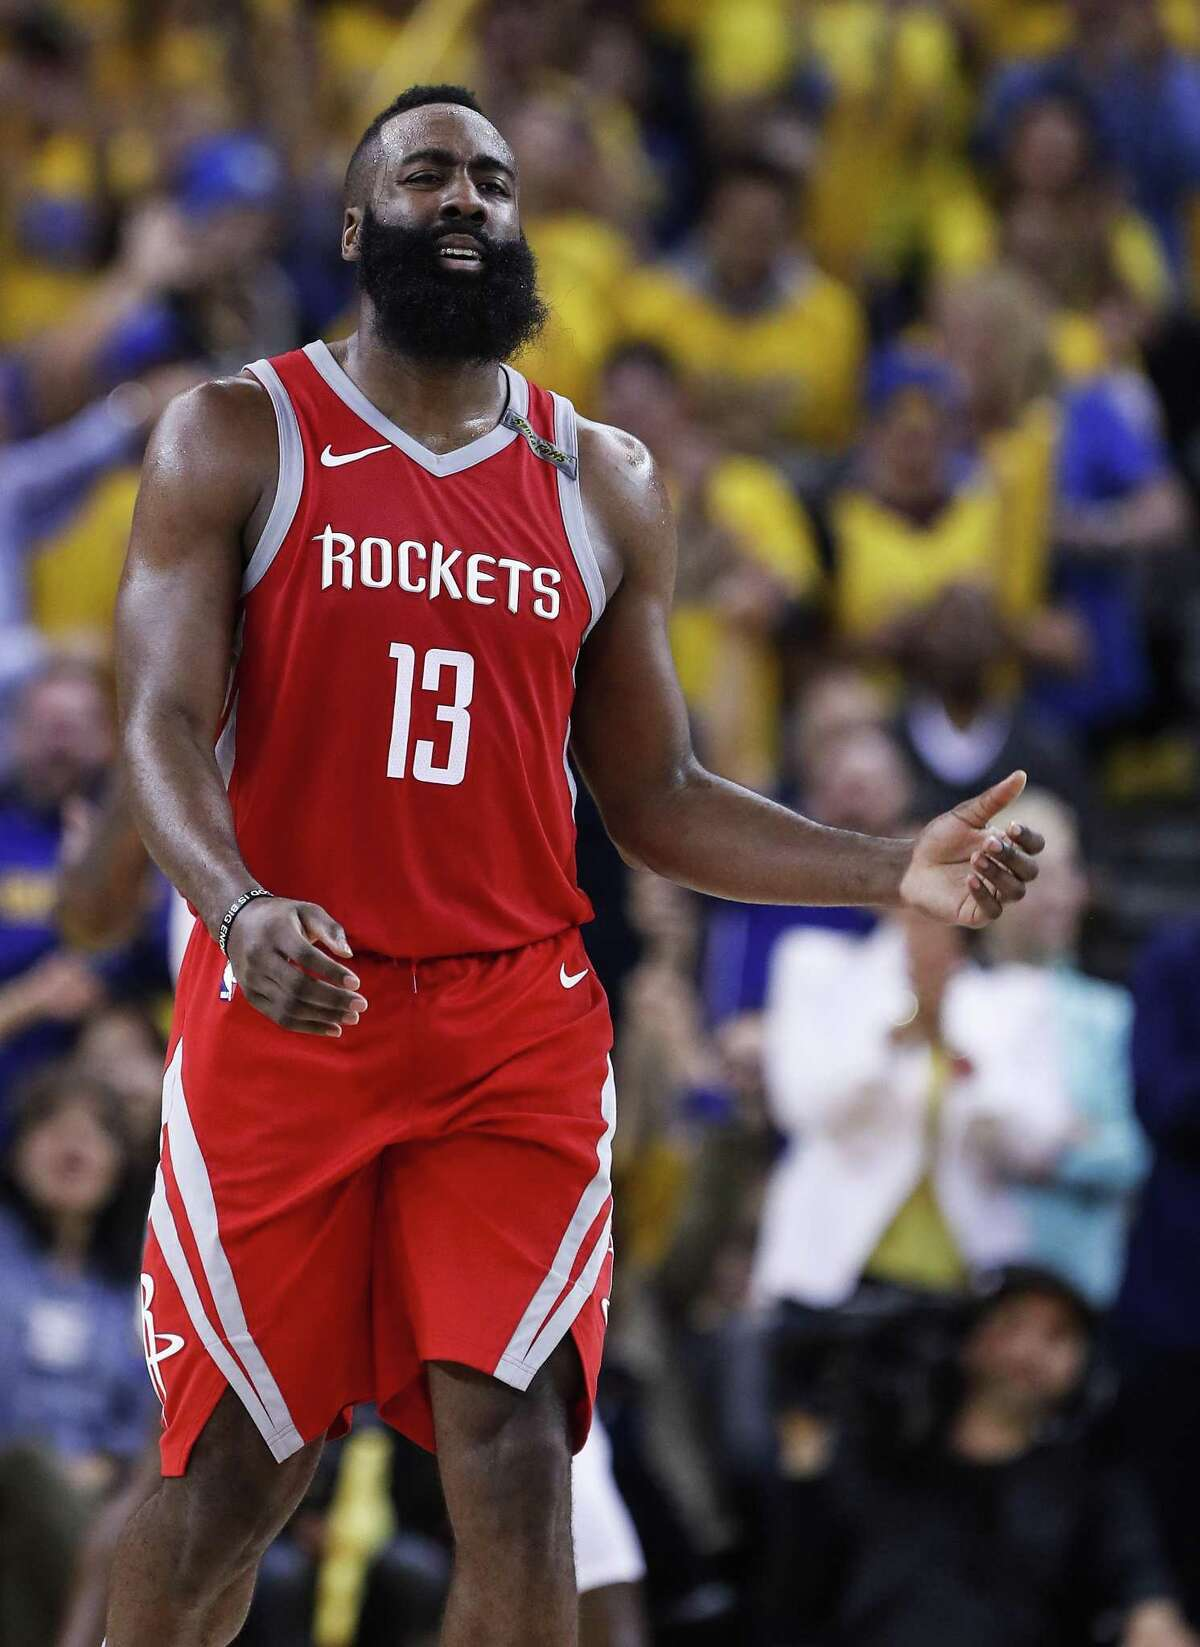 The Rockets' James Harden has also been nominated as Best Male Athlete.